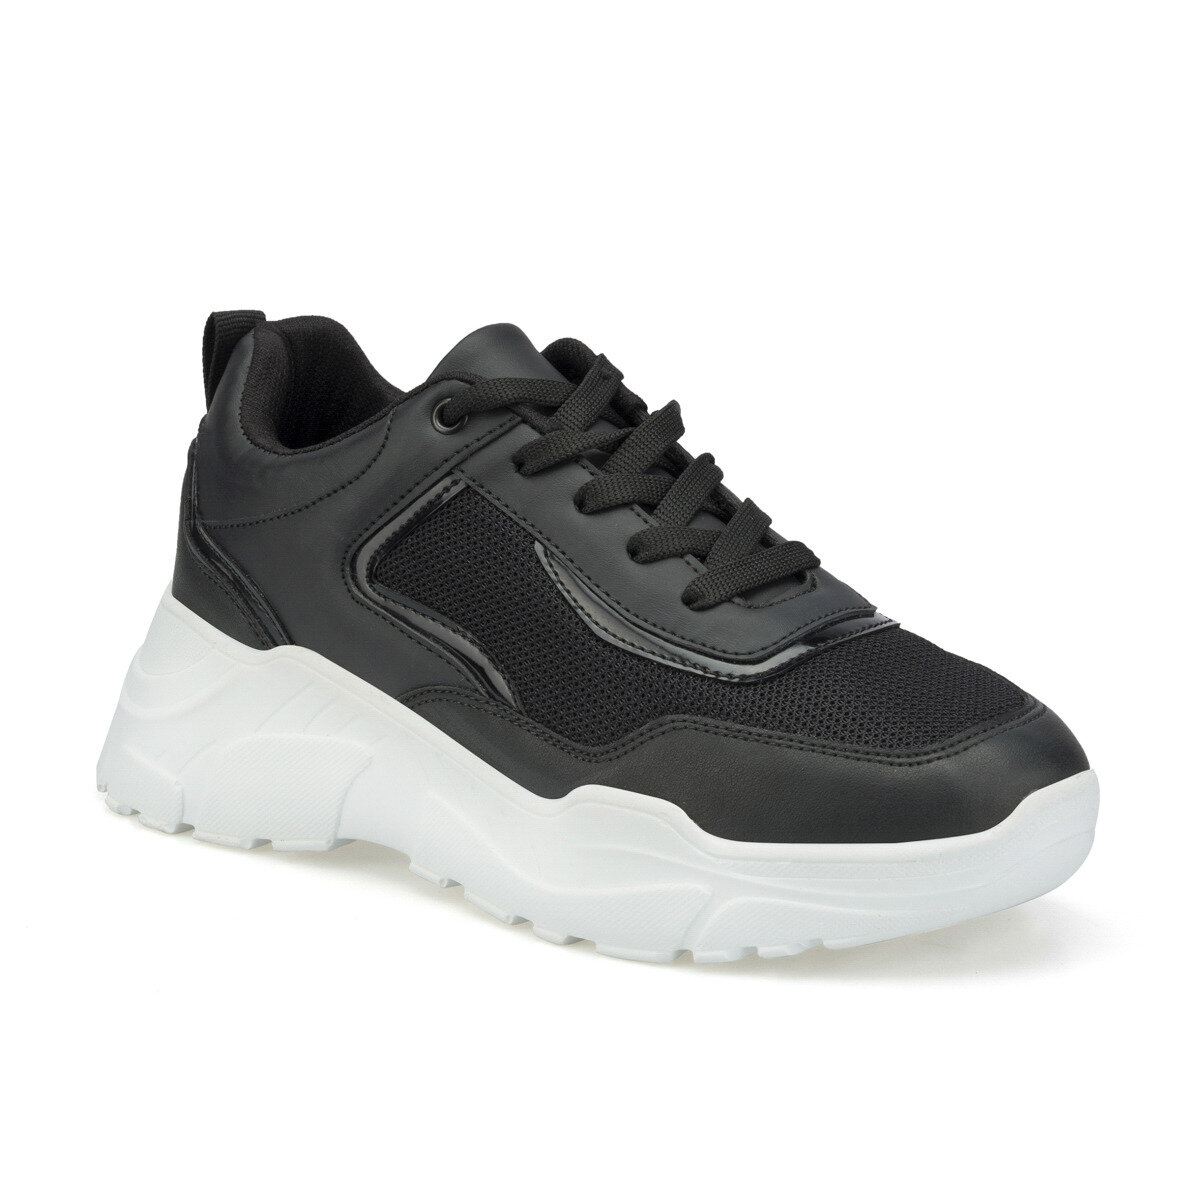 FLO 315579.Z Black Women 'S Sneaker Shoes Polaris